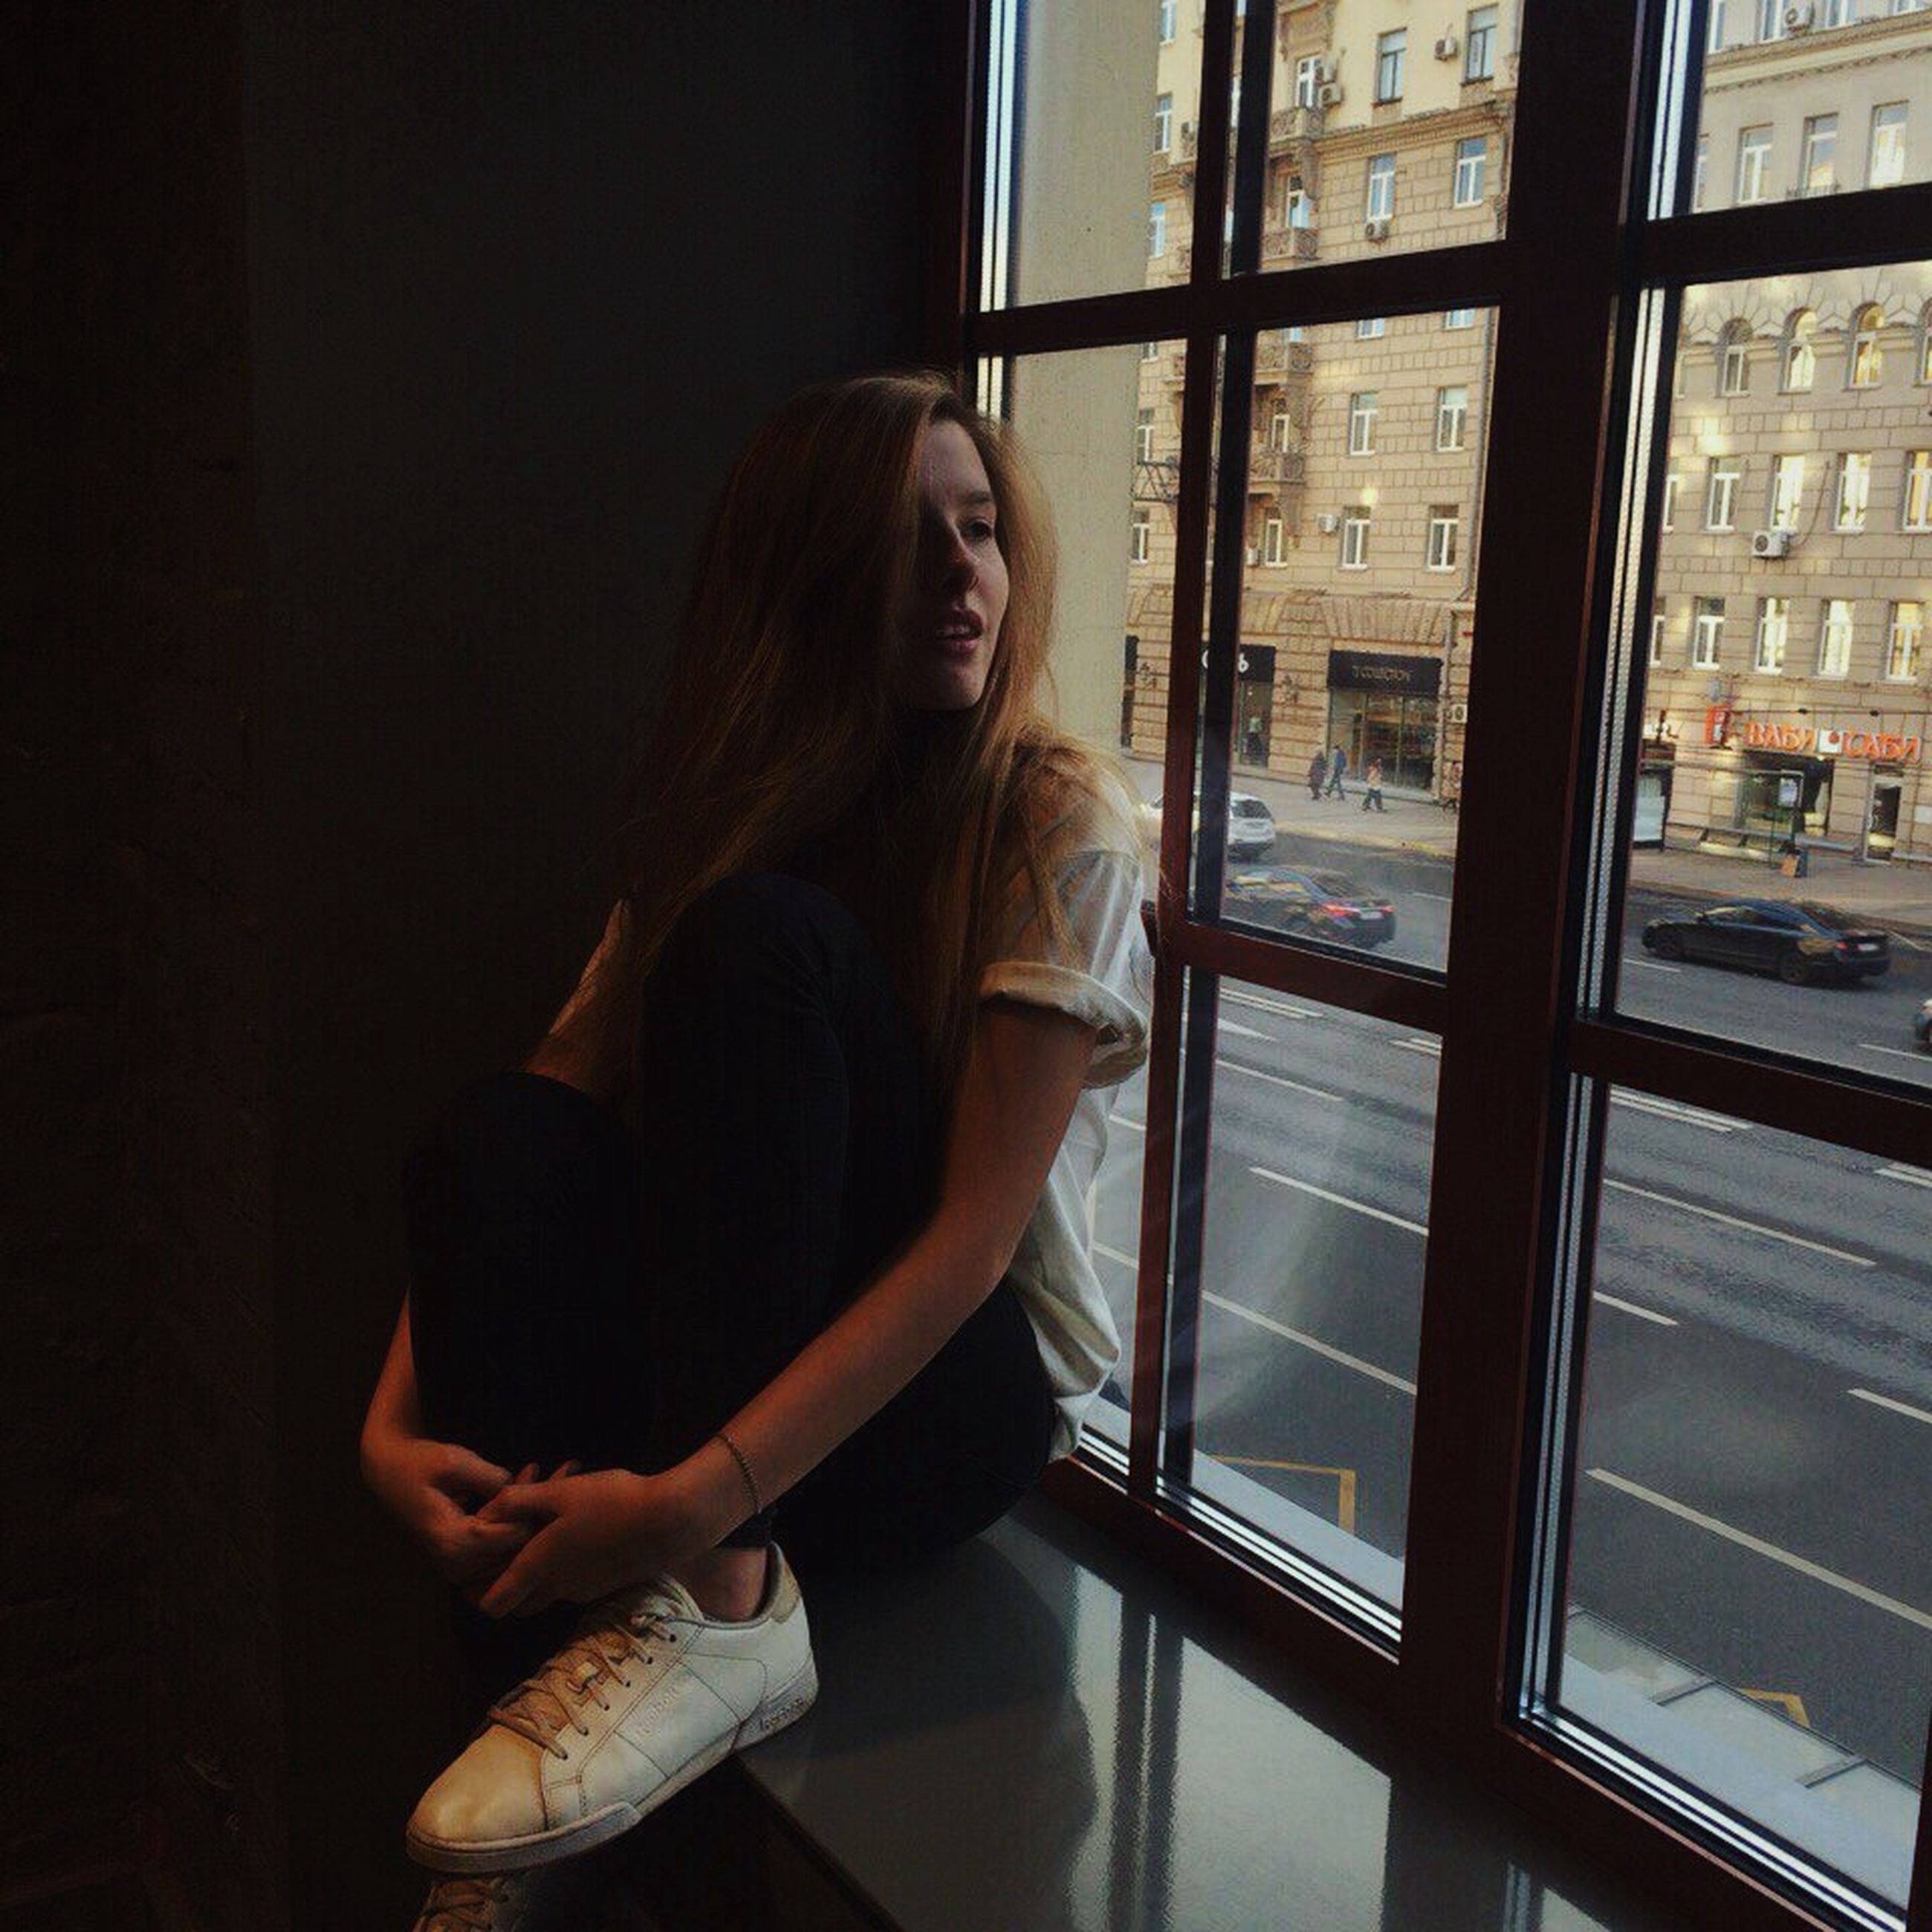 window, indoors, glass - material, casual clothing, transparent, side view, leisure activity, young adult, long hair, person, holding, day, looking, contemplation, profile, traveling